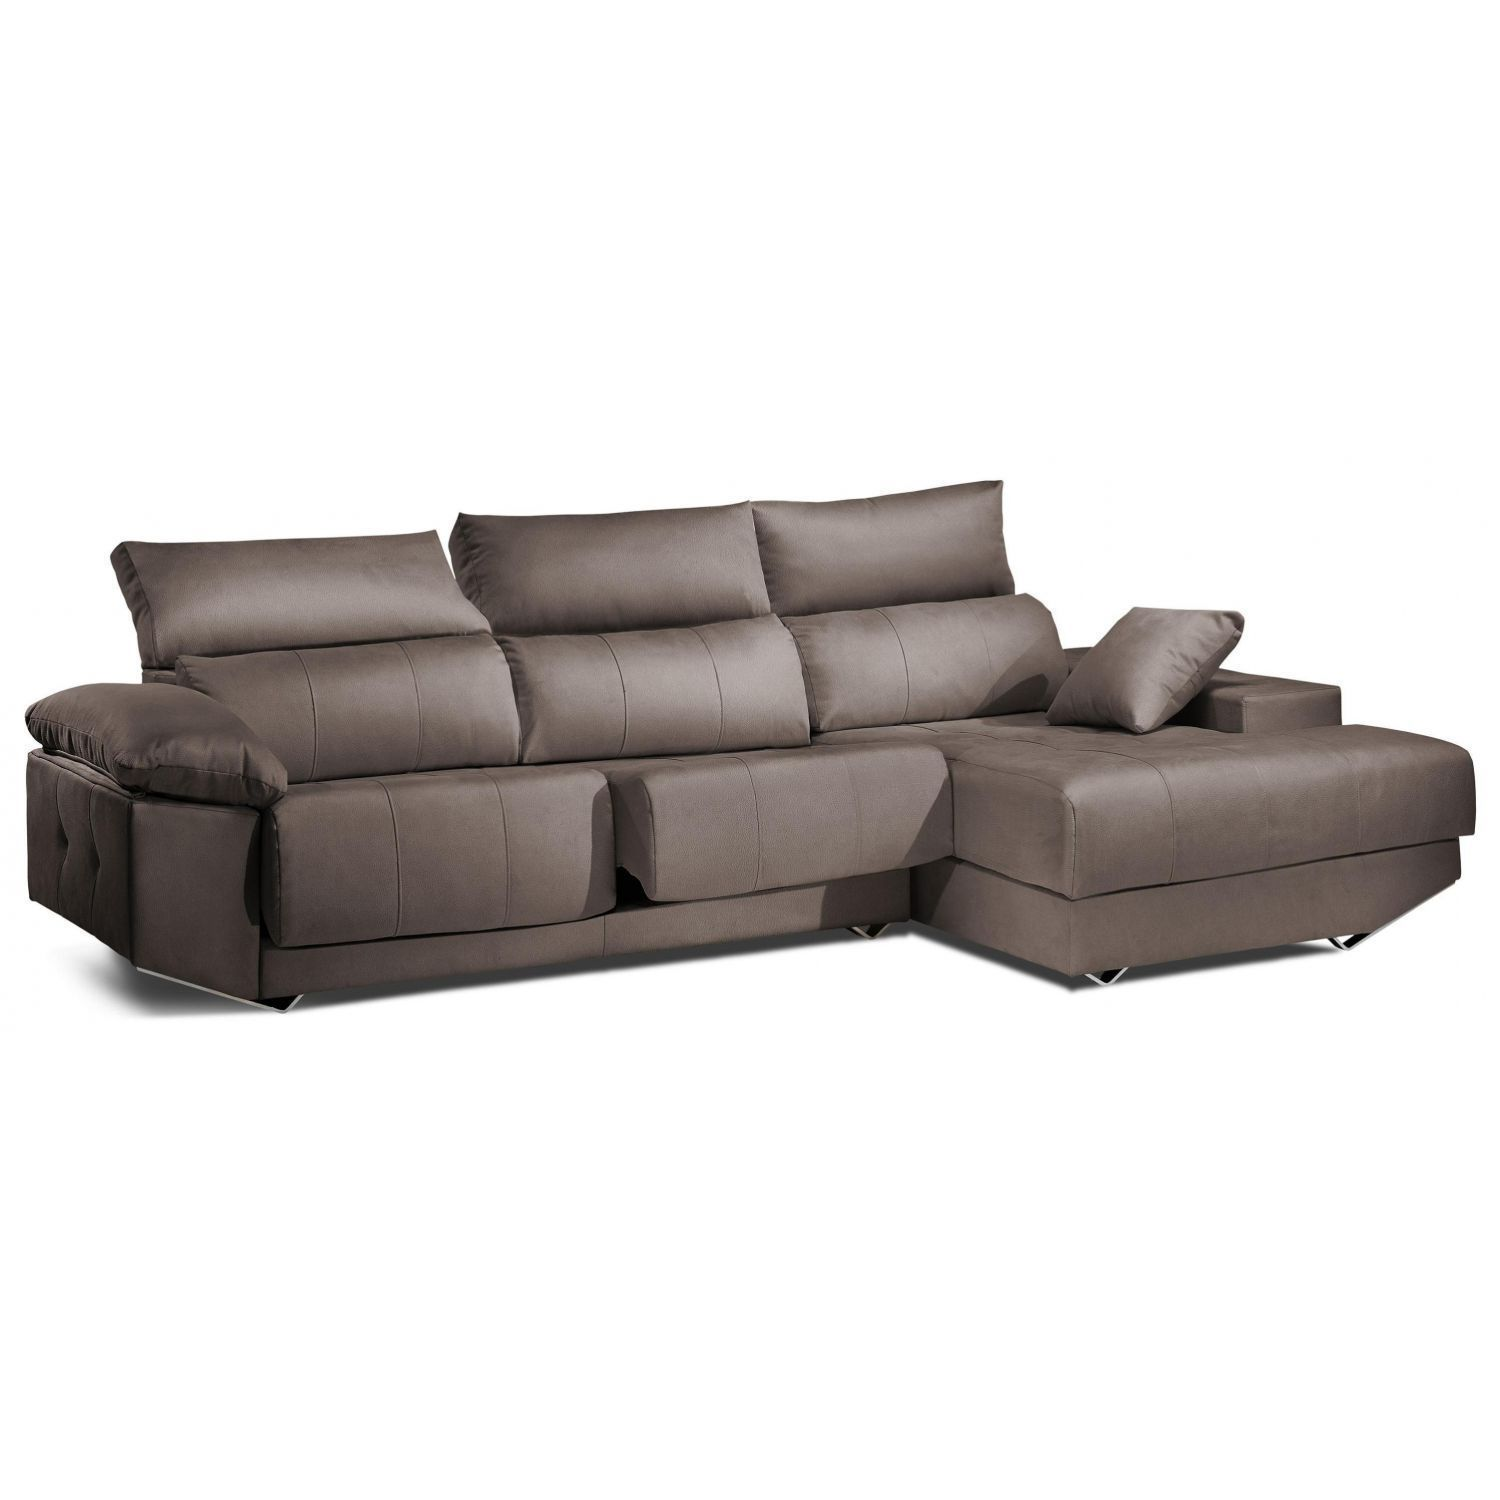 Chaiselongue calidad arena reclinable extensible 260 cm.